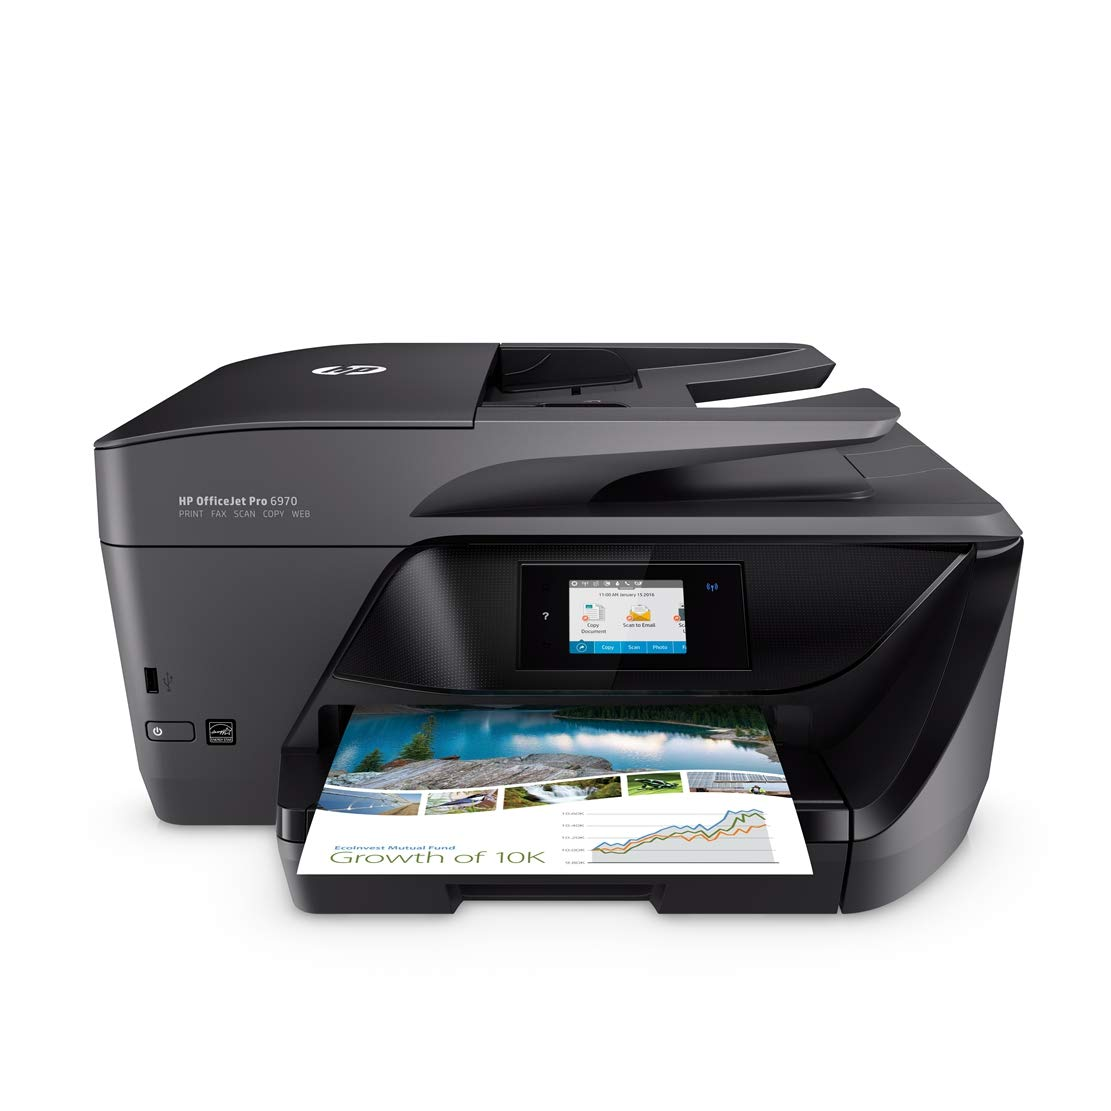 full spare HP XL ink Set HP OfficeJet Pro 6970 All-in-One Colour Inkjet Printer Instant Ink Compatible with 3 Months Trial